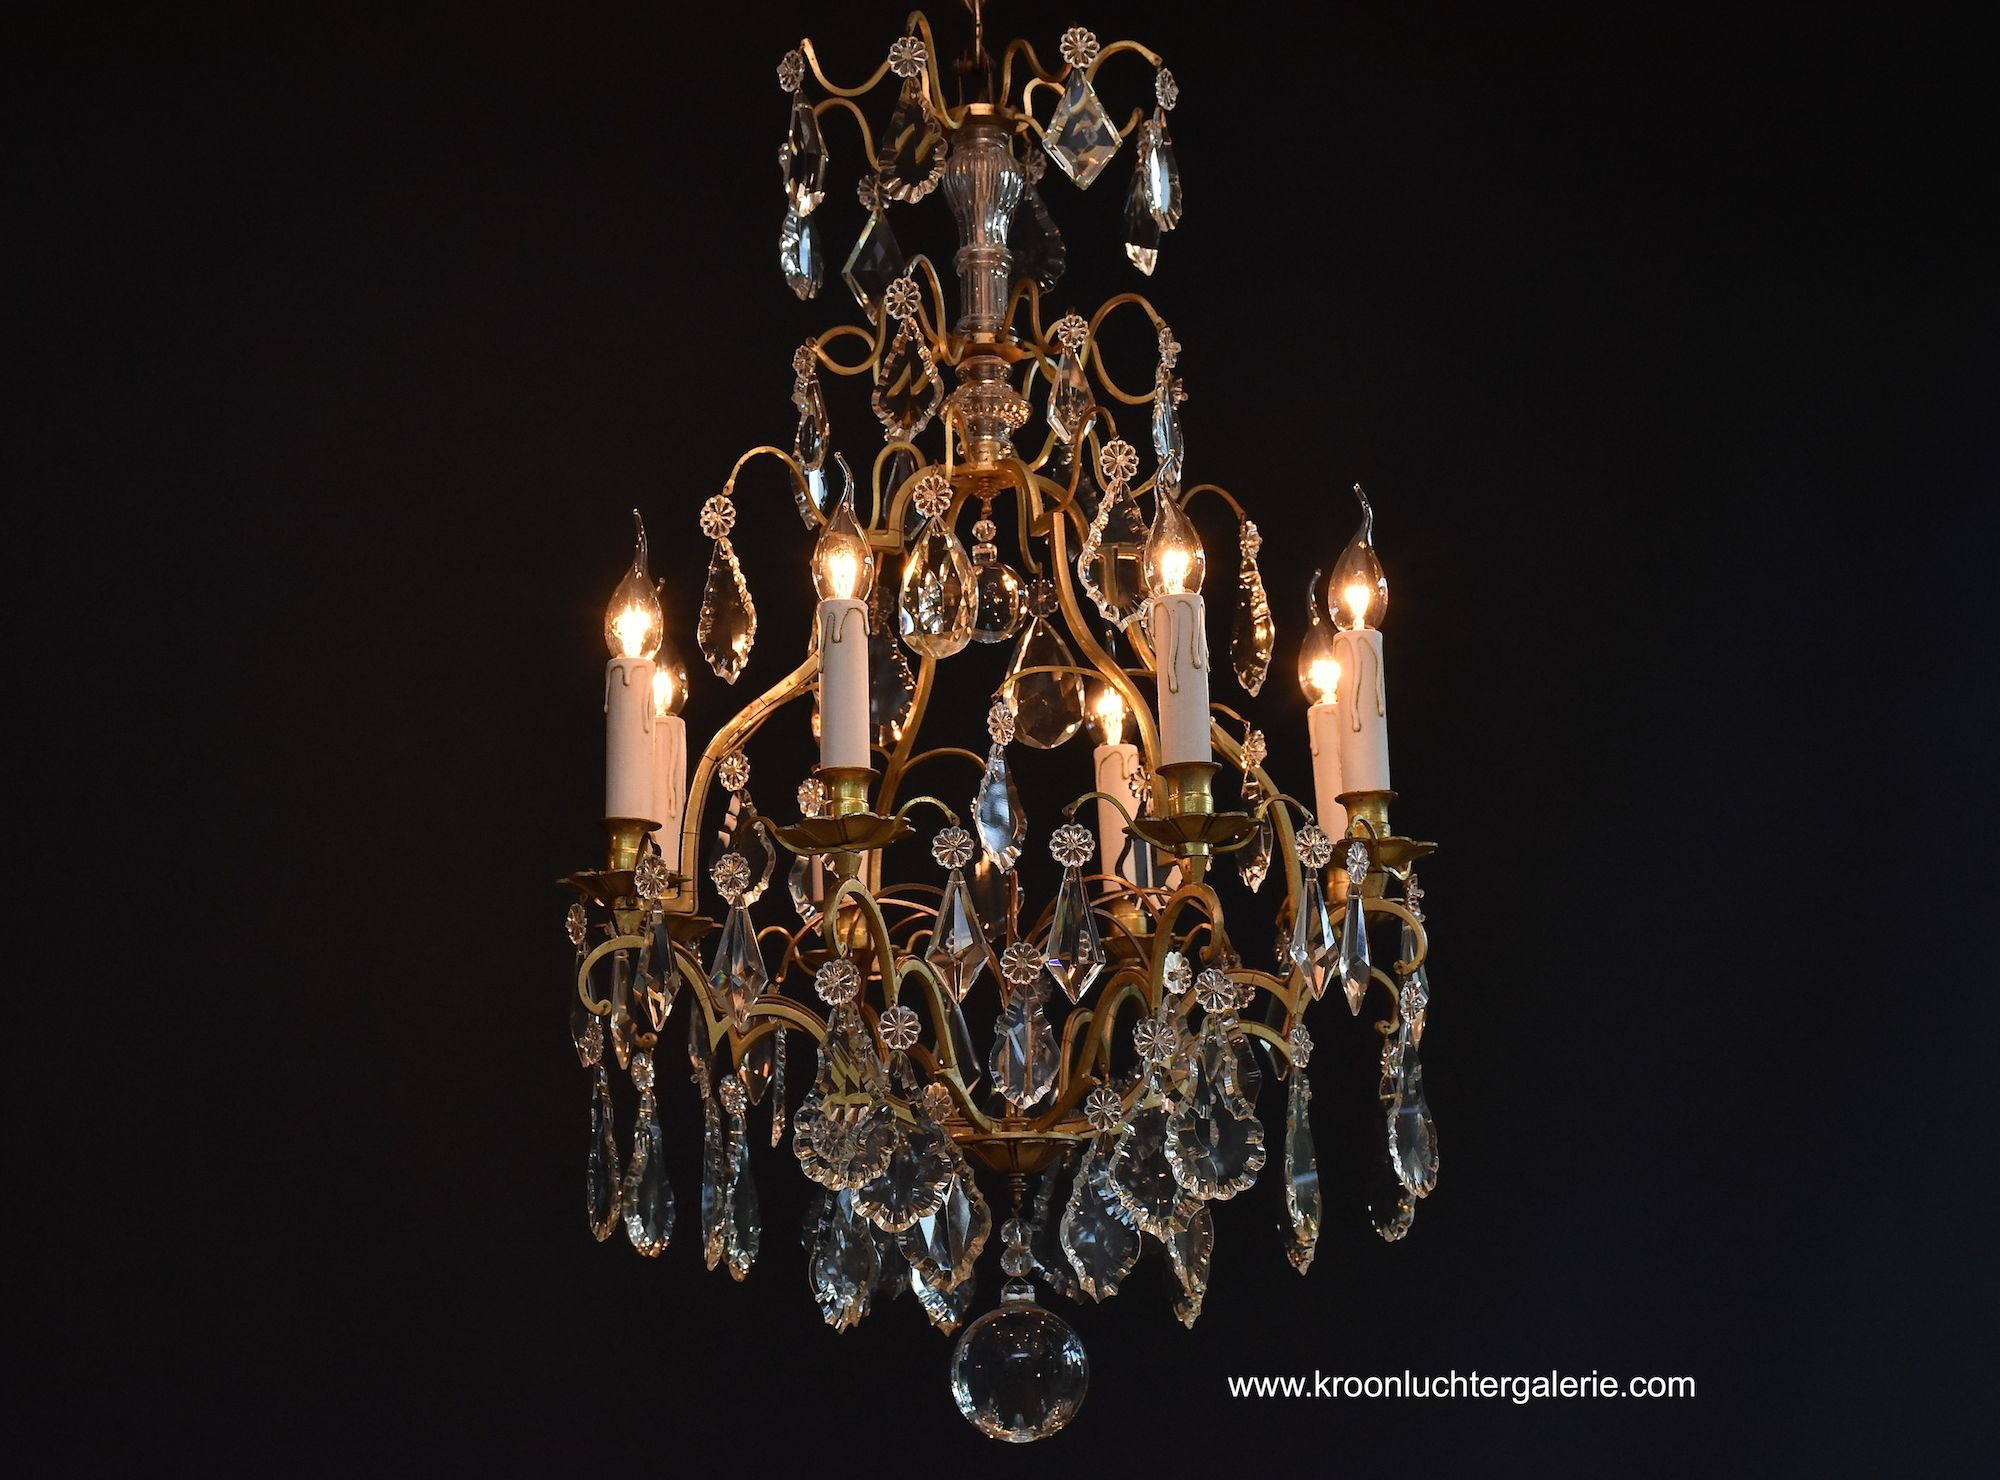 French chandelier with 8 light